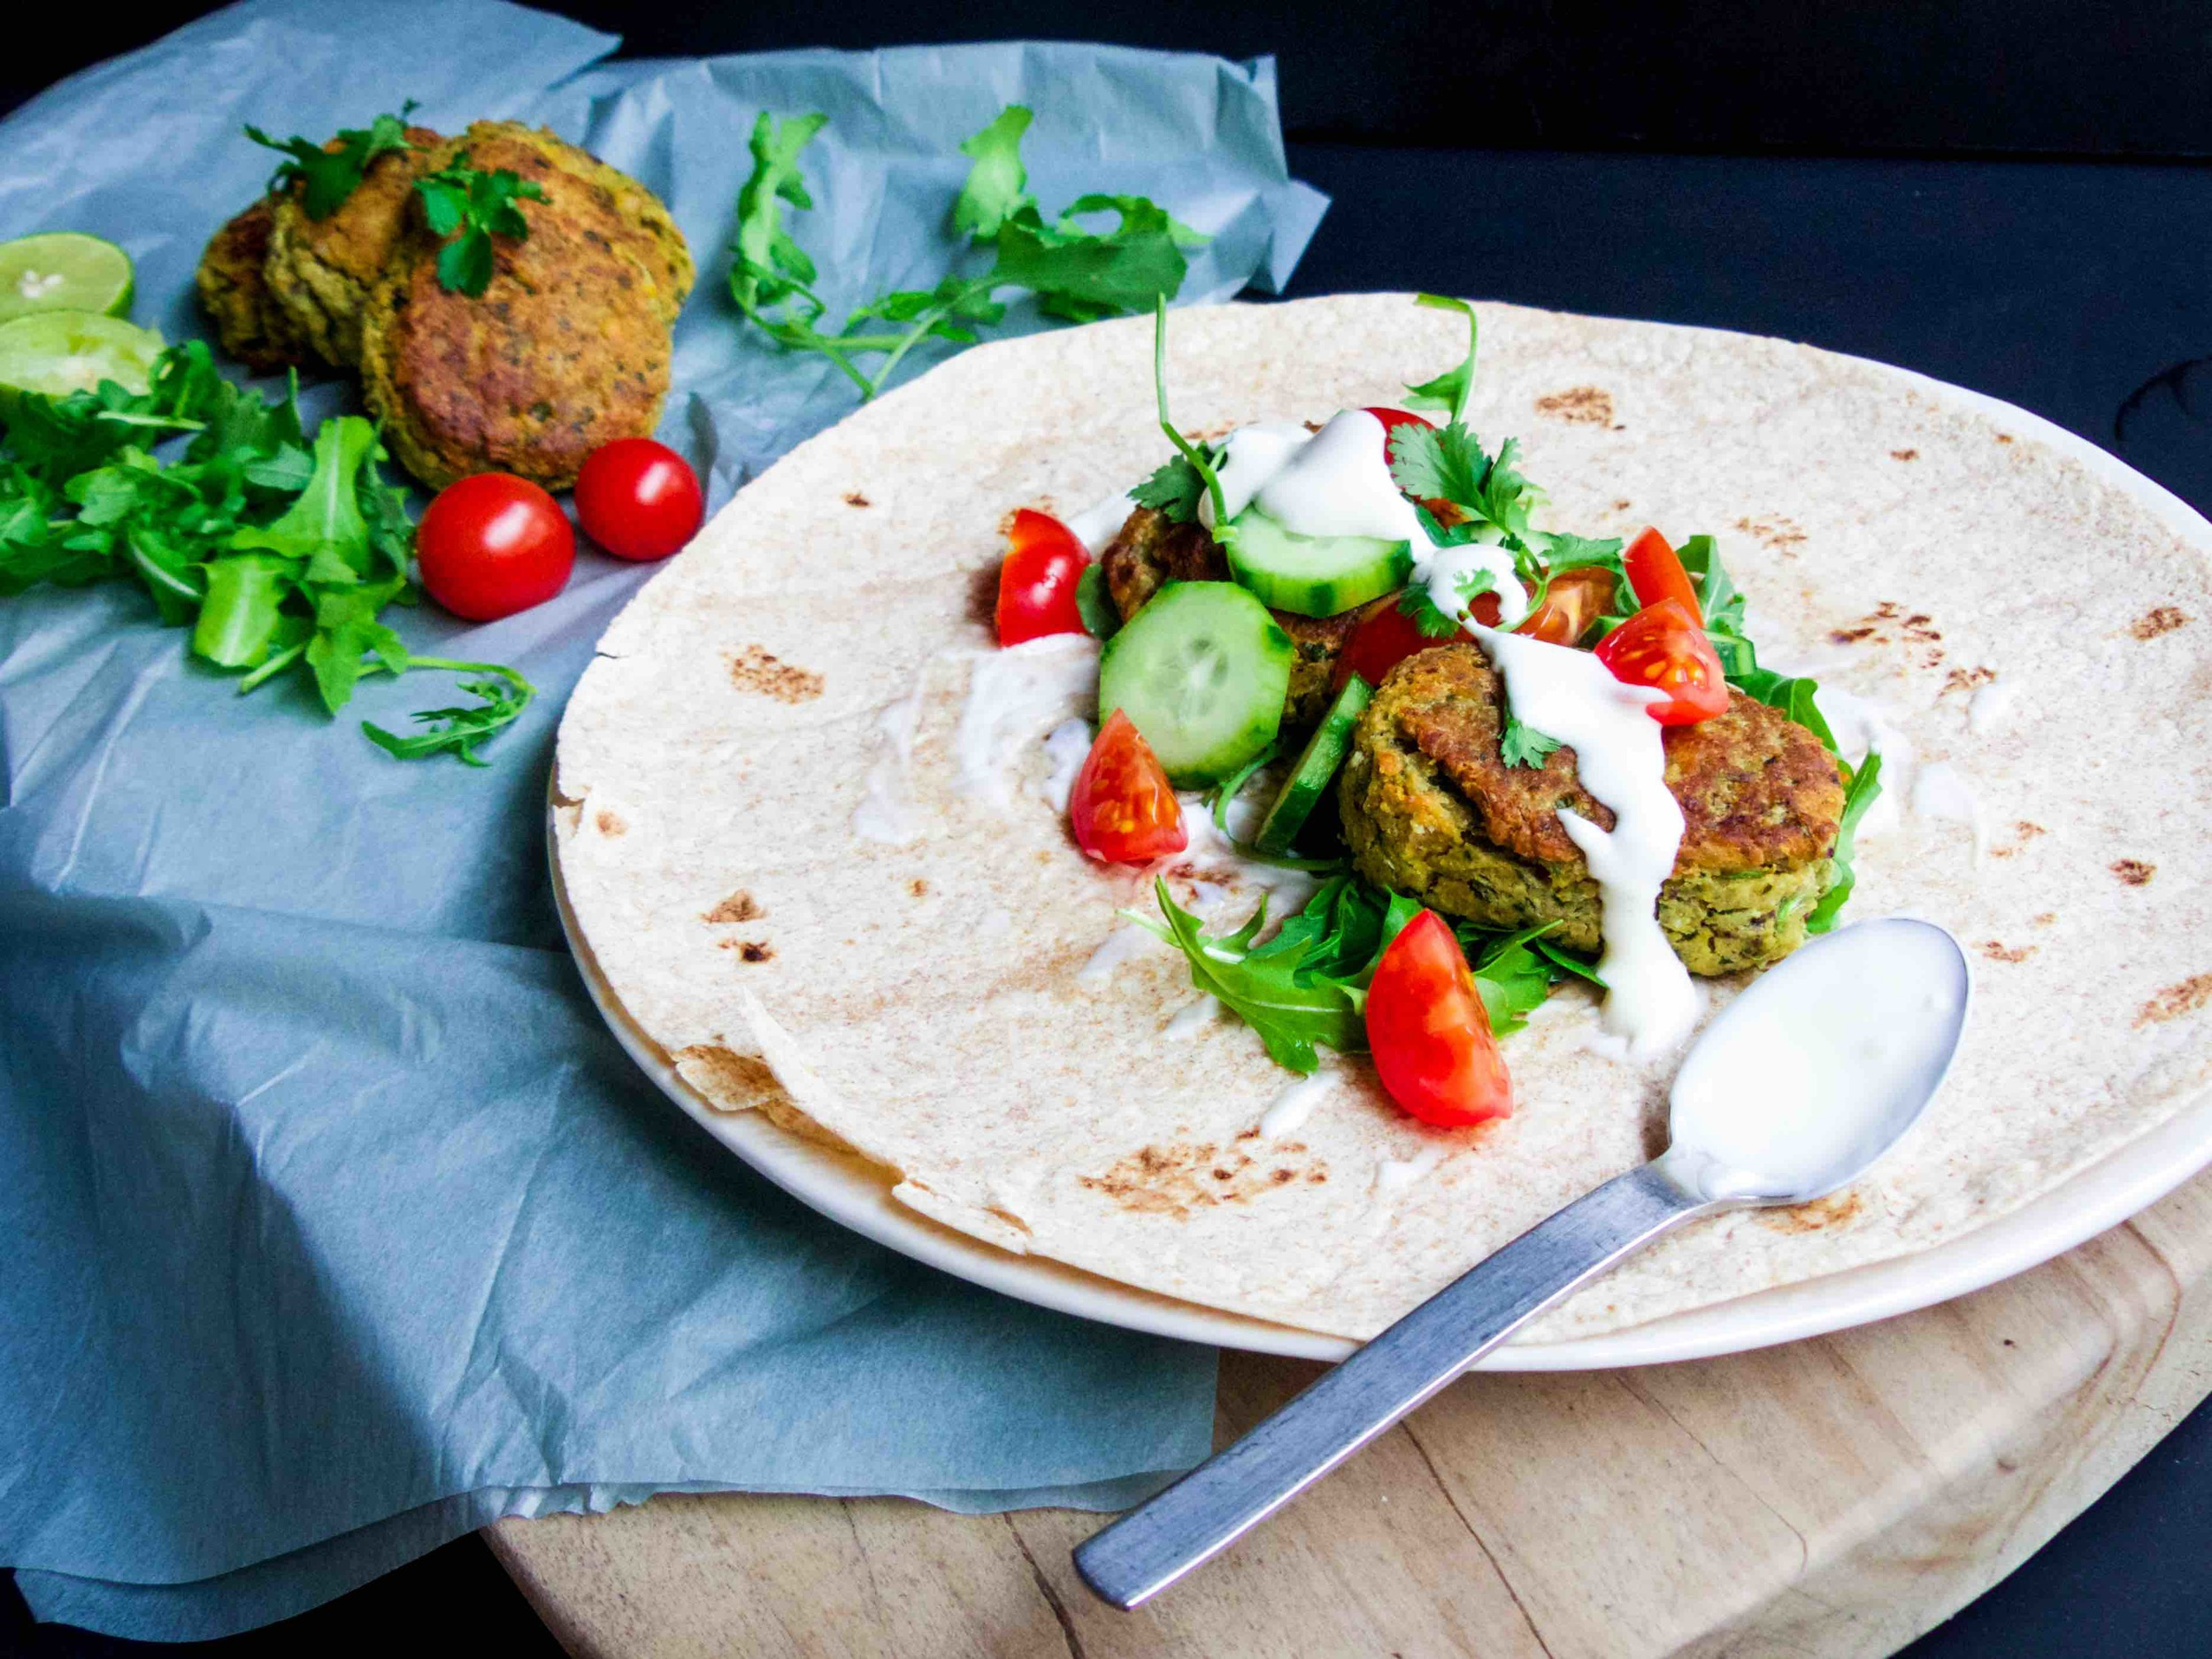 simple oven-baked falafel served with tortilla wrap